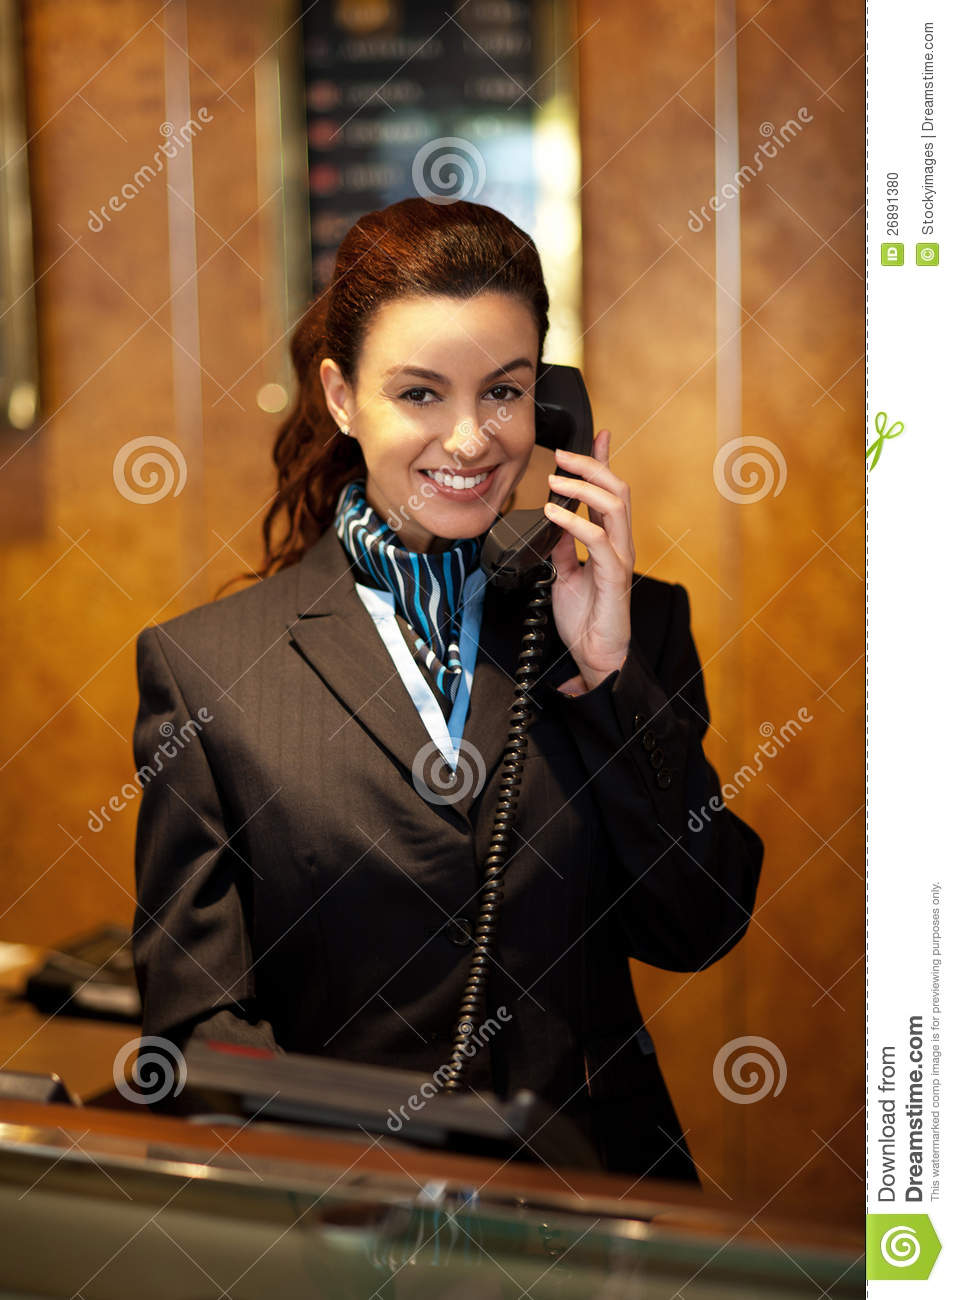 Stylish Female Attendant At Hotel Reception Stock Photo ...